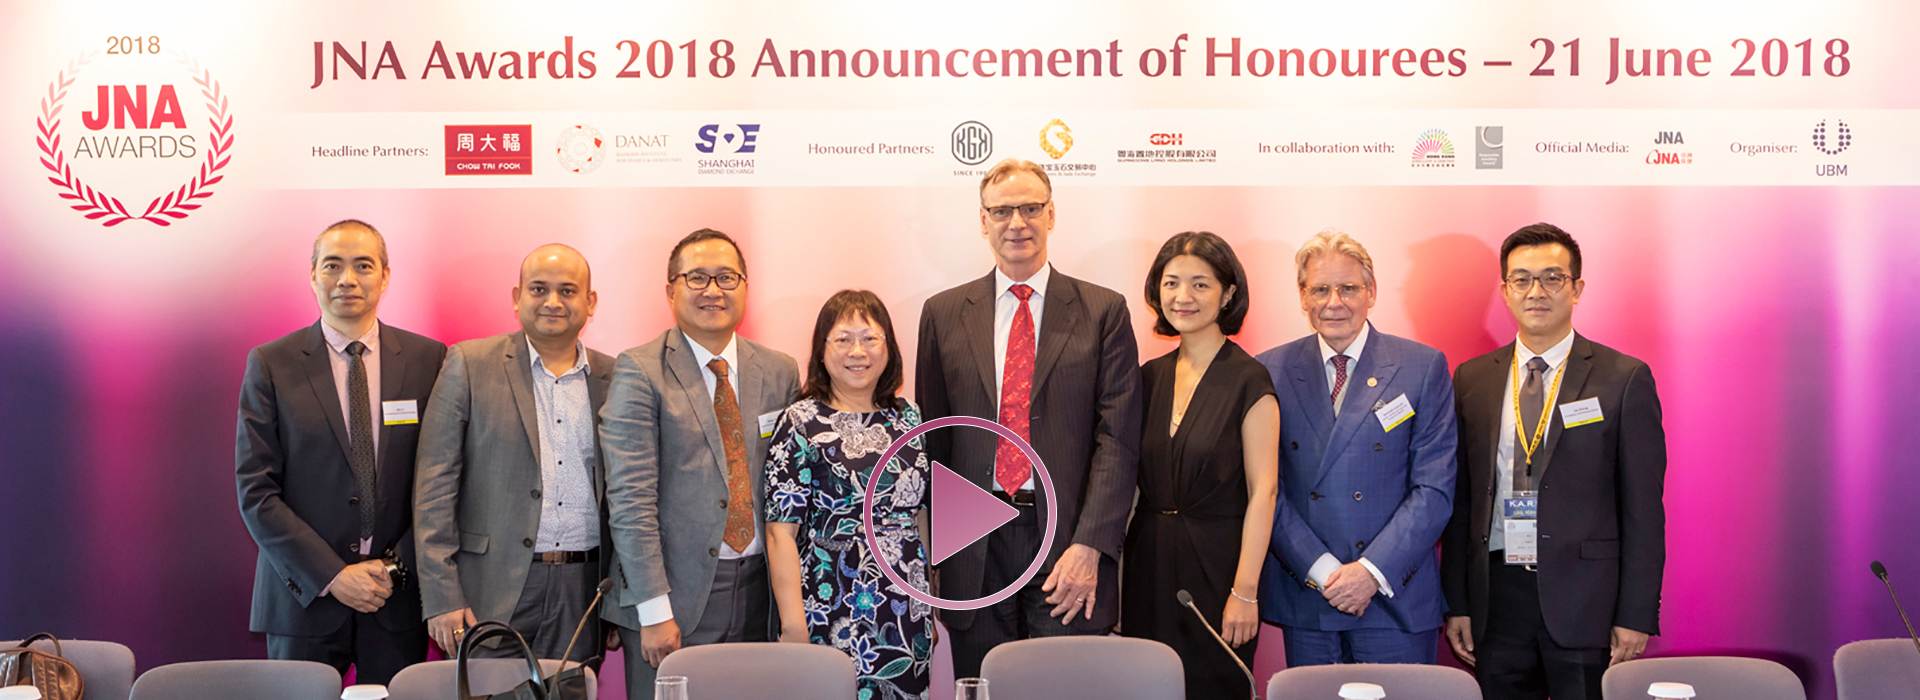 2018 Honouree Announcement video